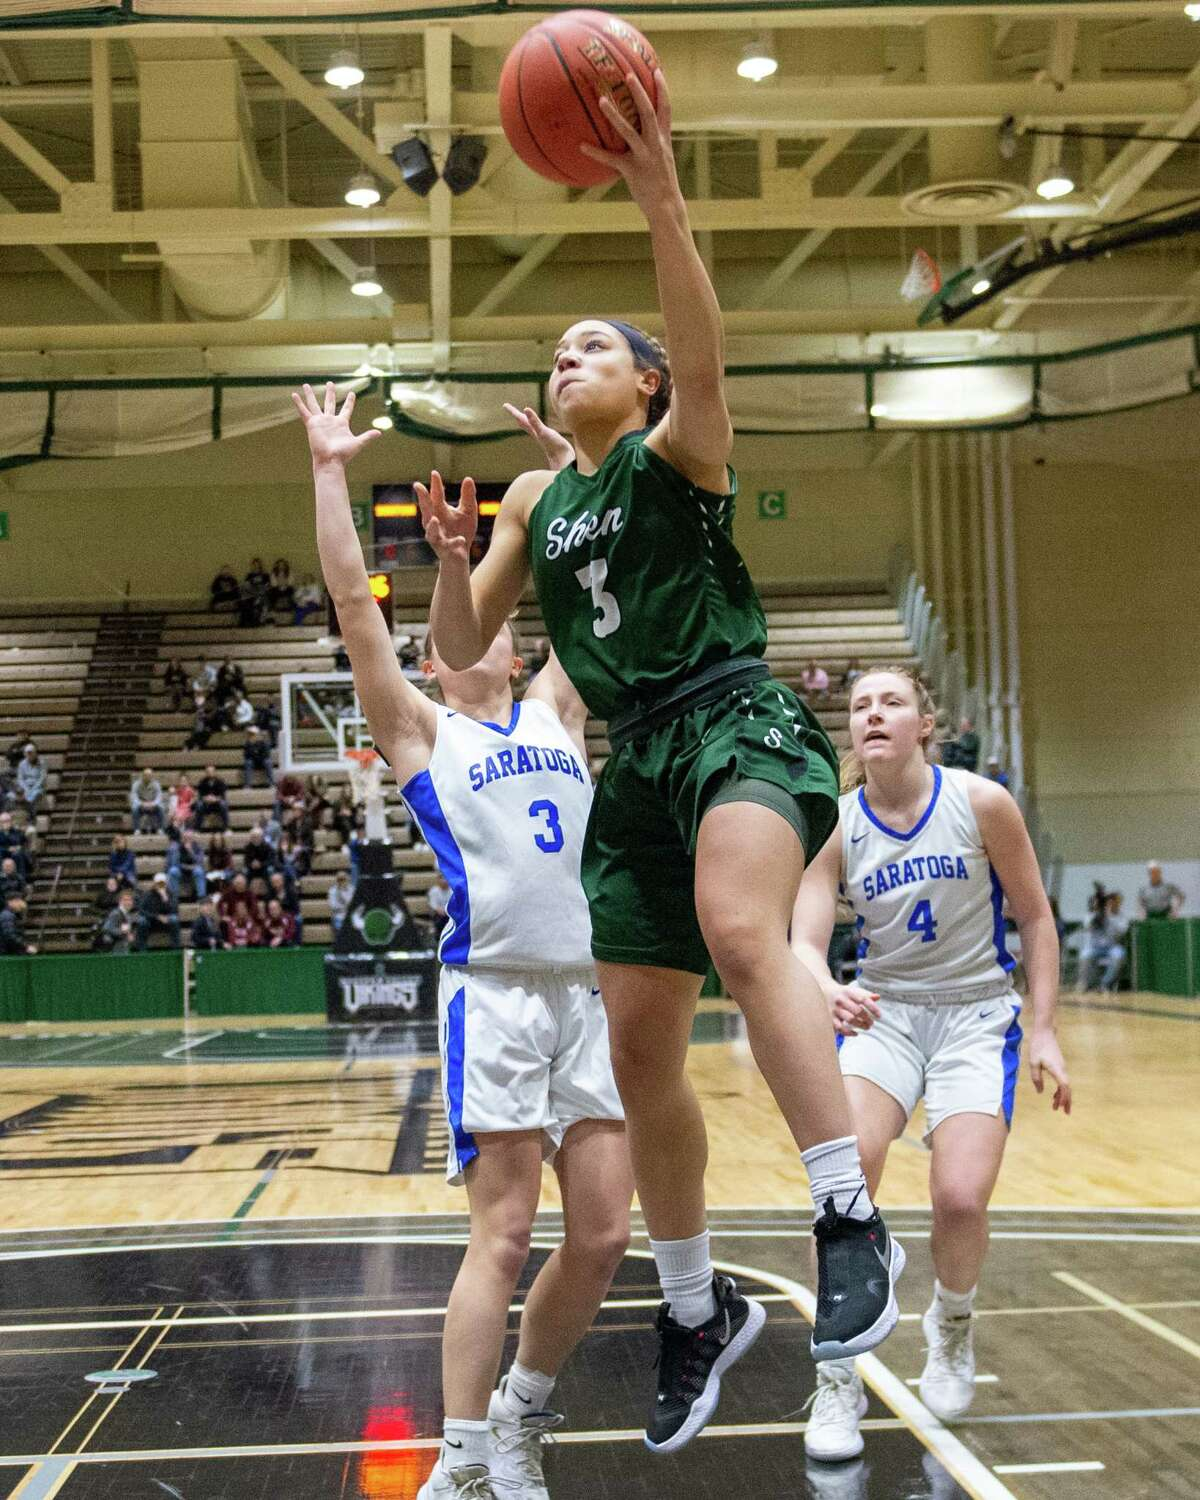 Shenendehowa senior Simone Walker drives to the basket against Saratoga in the Section II, Class AA finals at Hudson Valley Community College in Troy NY on Saturday, March 7, 2020 (Jim Franco/Special to the Times Union.)